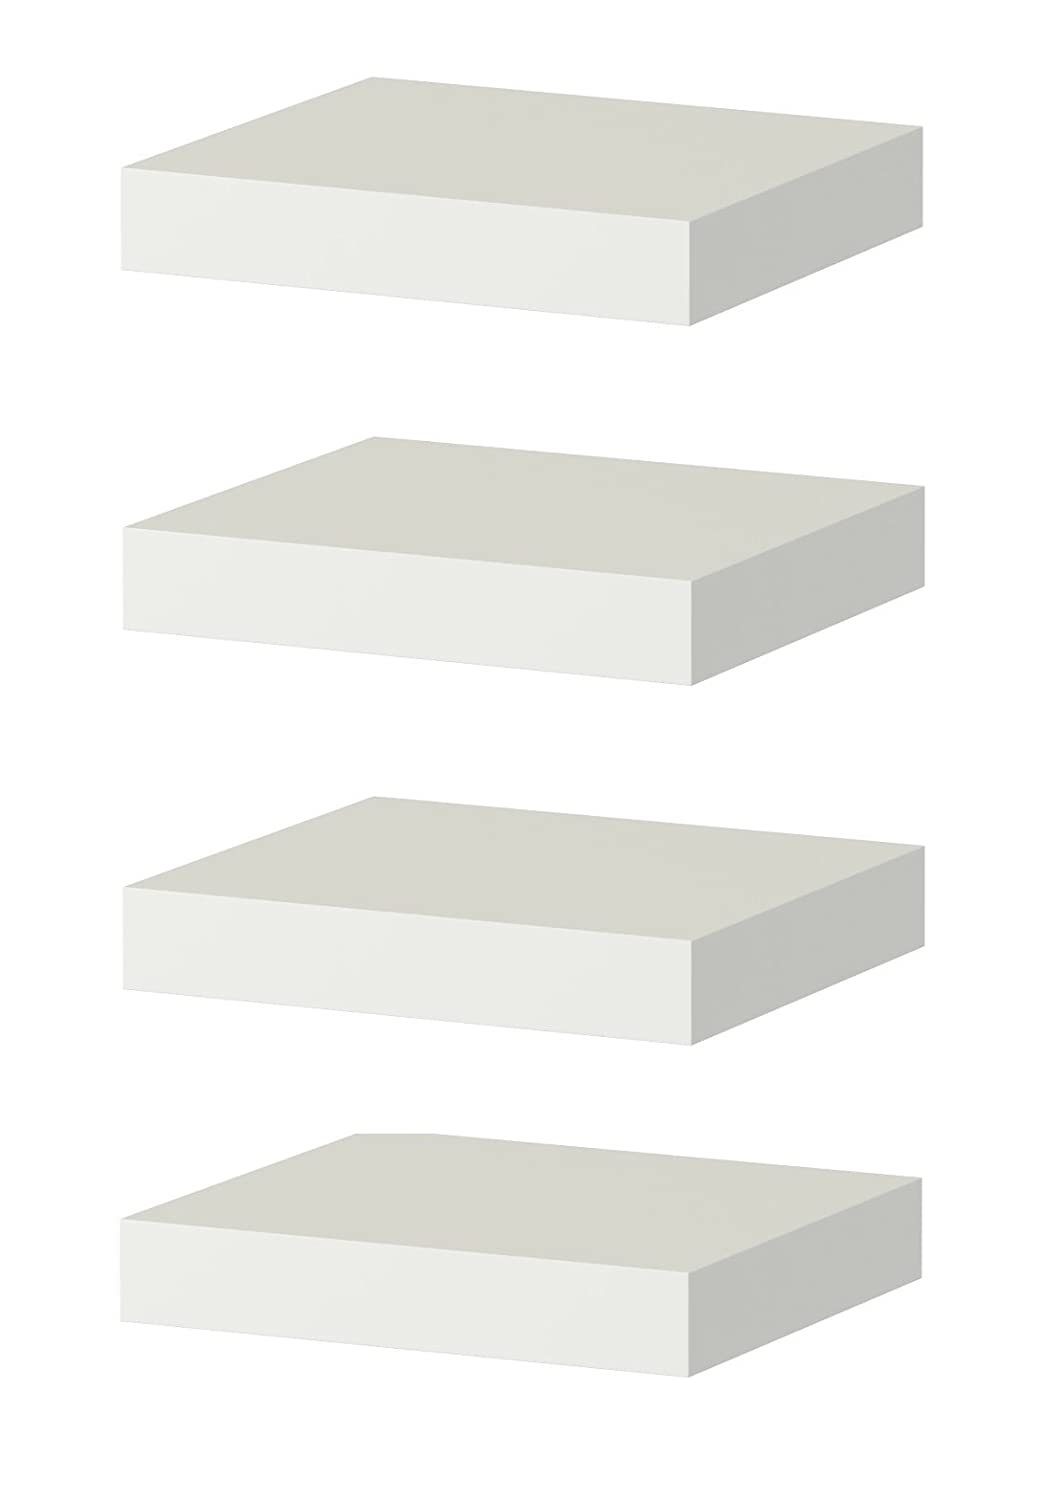 Tremendous Ikea Floating Wall Lack Shelf White Home Decor Stack Of 3 Shelves Download Free Architecture Designs Viewormadebymaigaardcom